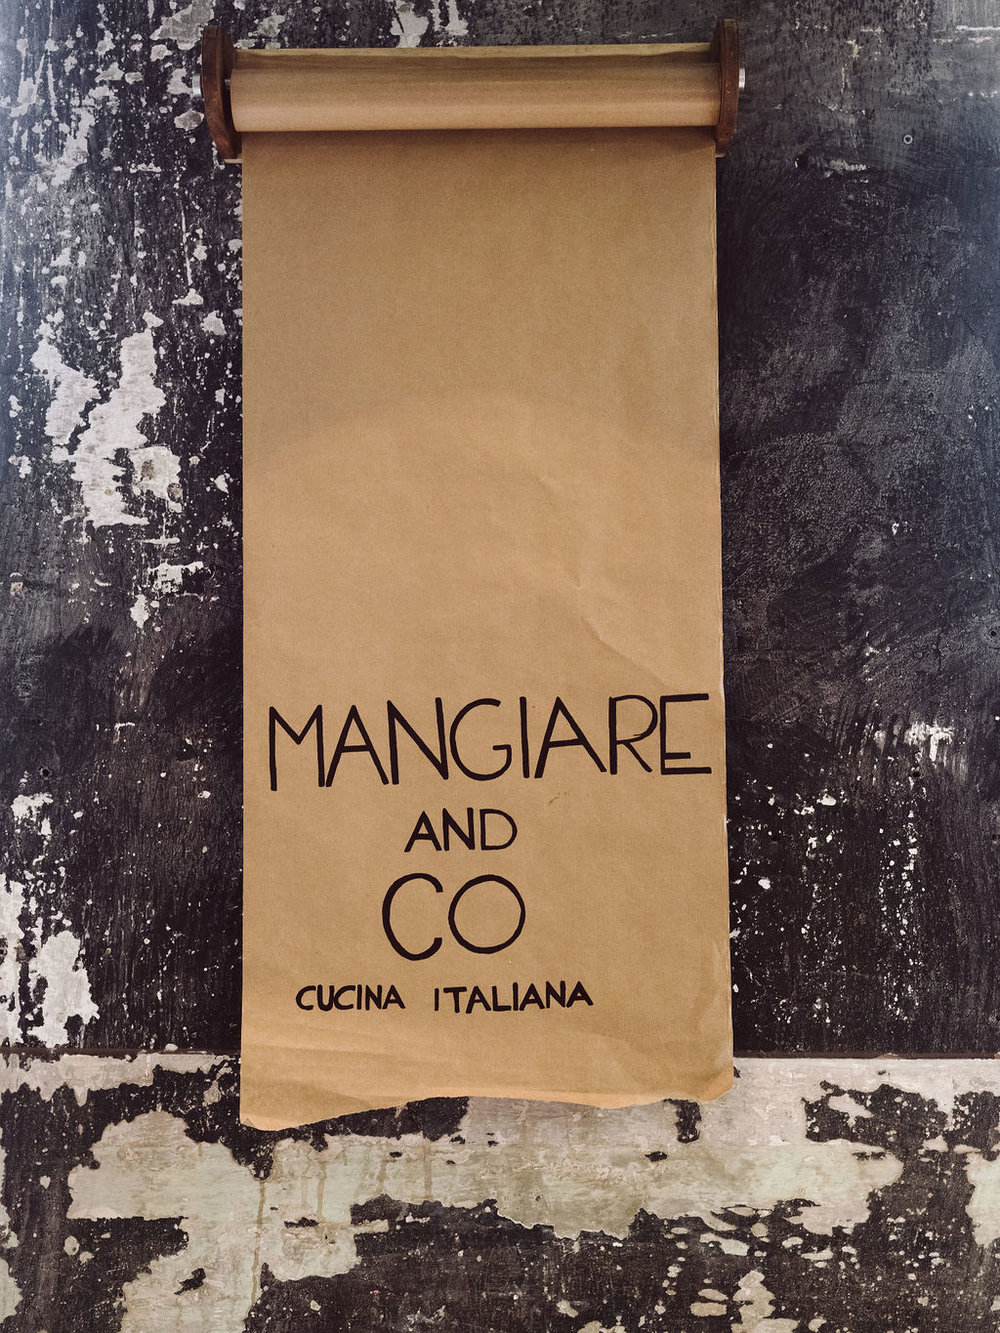 mangiare-and-co-017.jpg